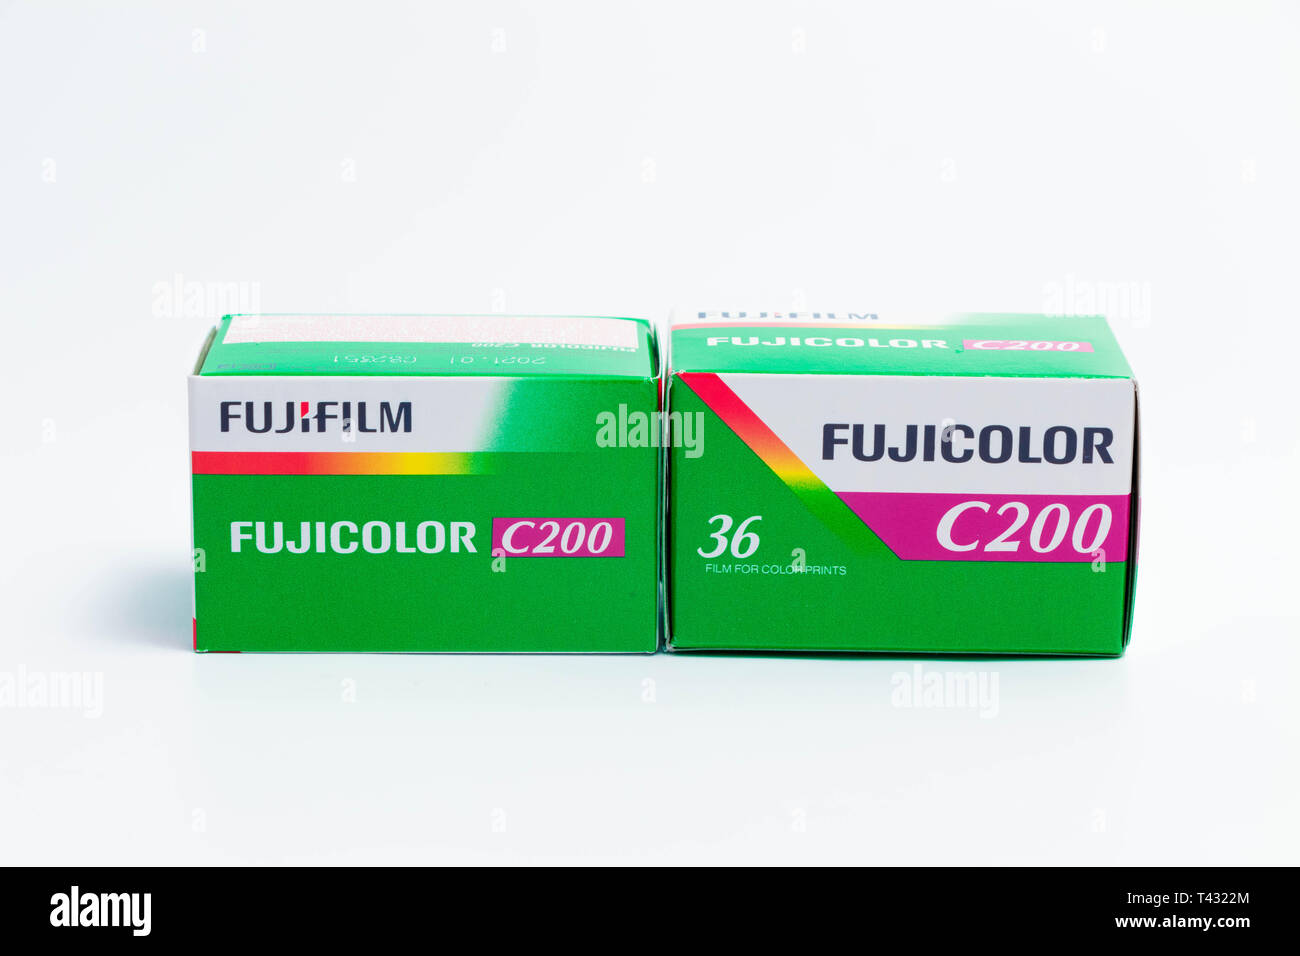 35mm film Kodak  and fujifilm fujicolor 36 exposure for analog photography Stock Photo